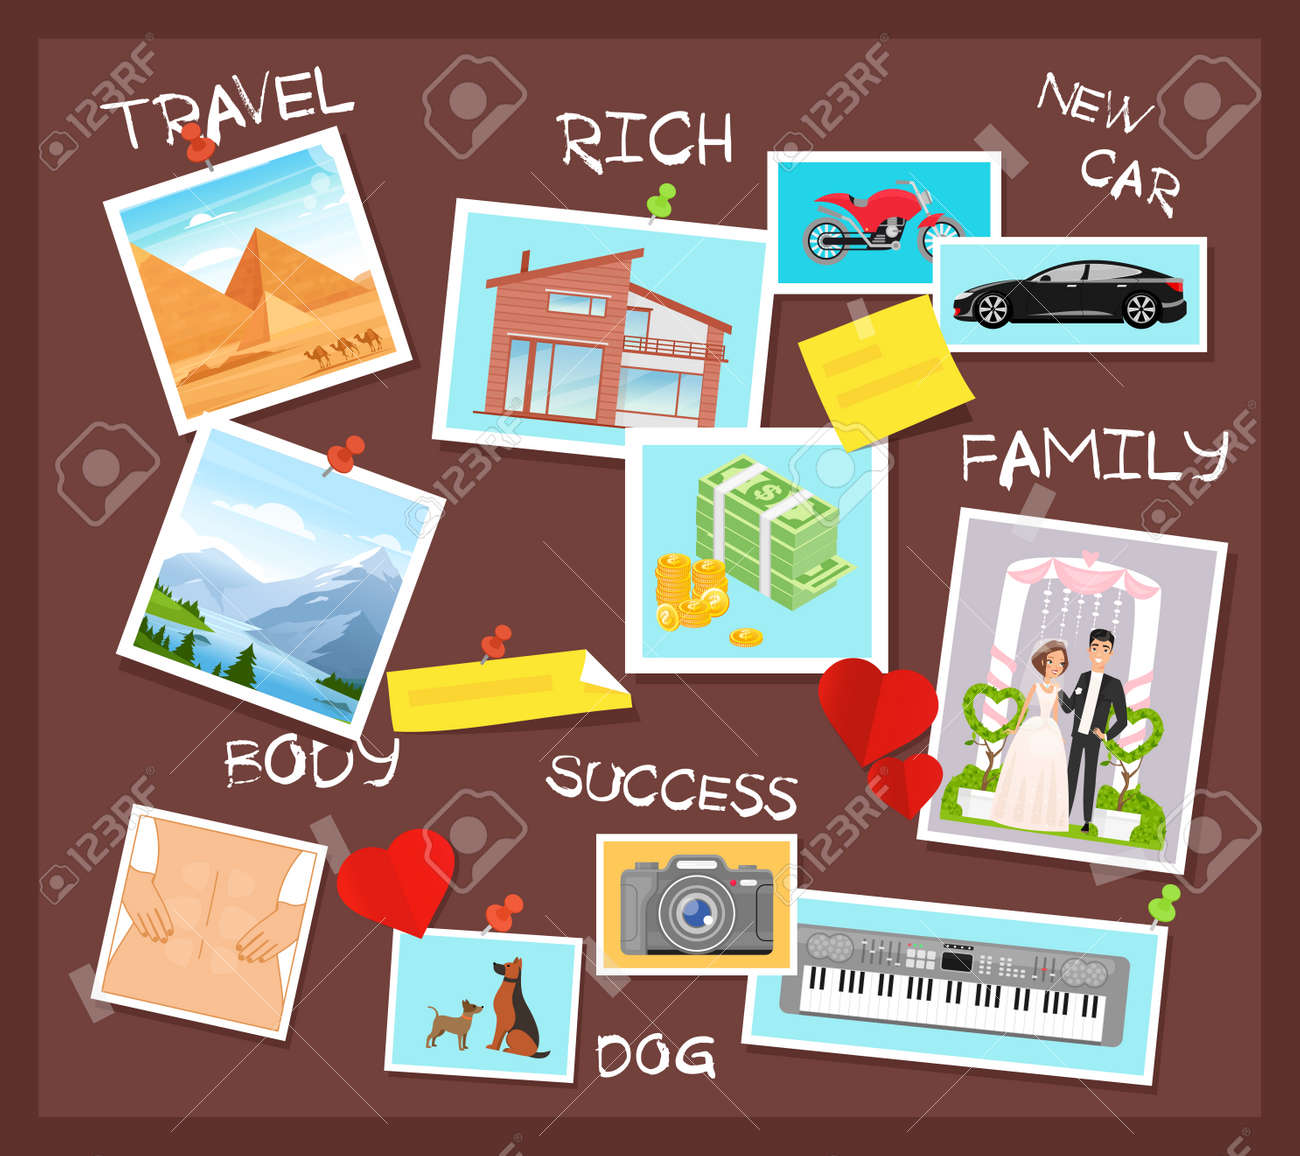 Cartoon flat visionary examples of financial business success, travel achievements, happy family wedding, motivation for body training. Vision board, collage with dreams and goals vector illustration - 151954095